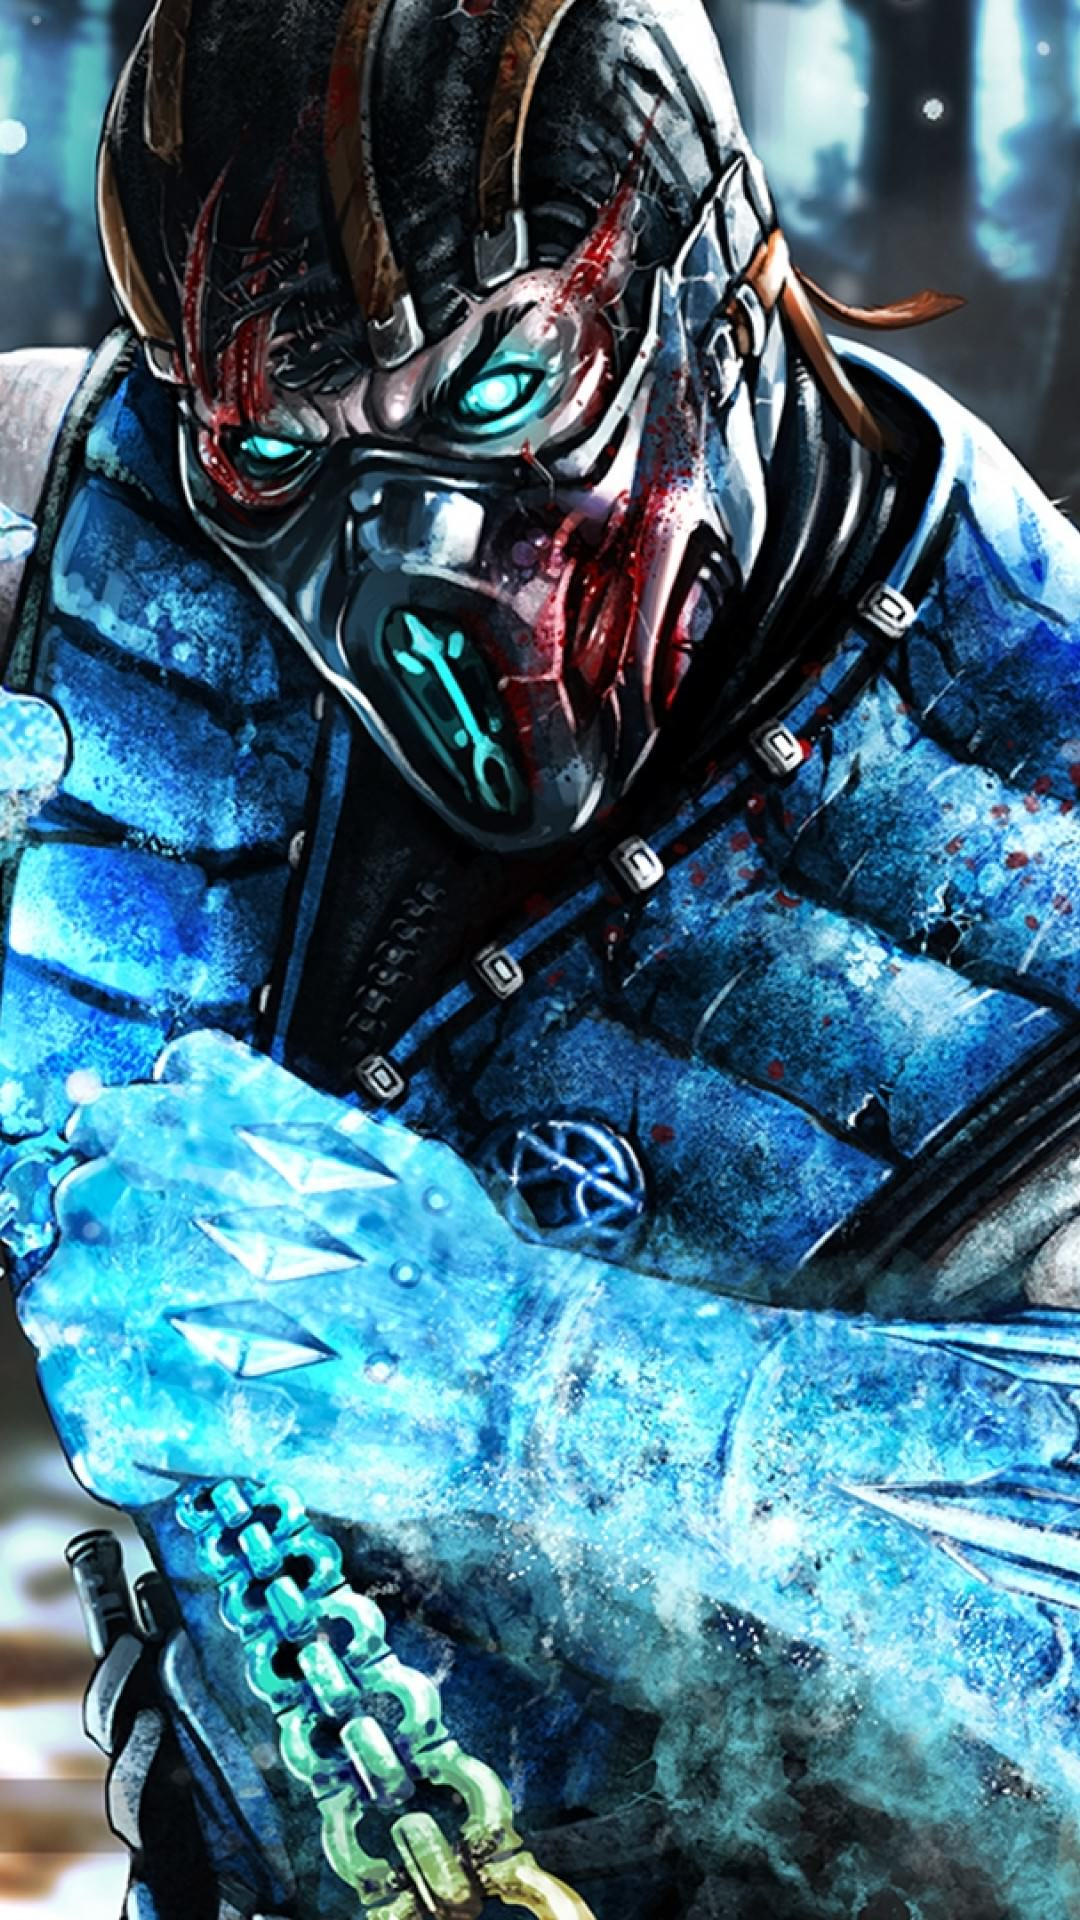 Mortal Kombat X Sub-Zero Wallpapers - Top Free Mortal Kombat